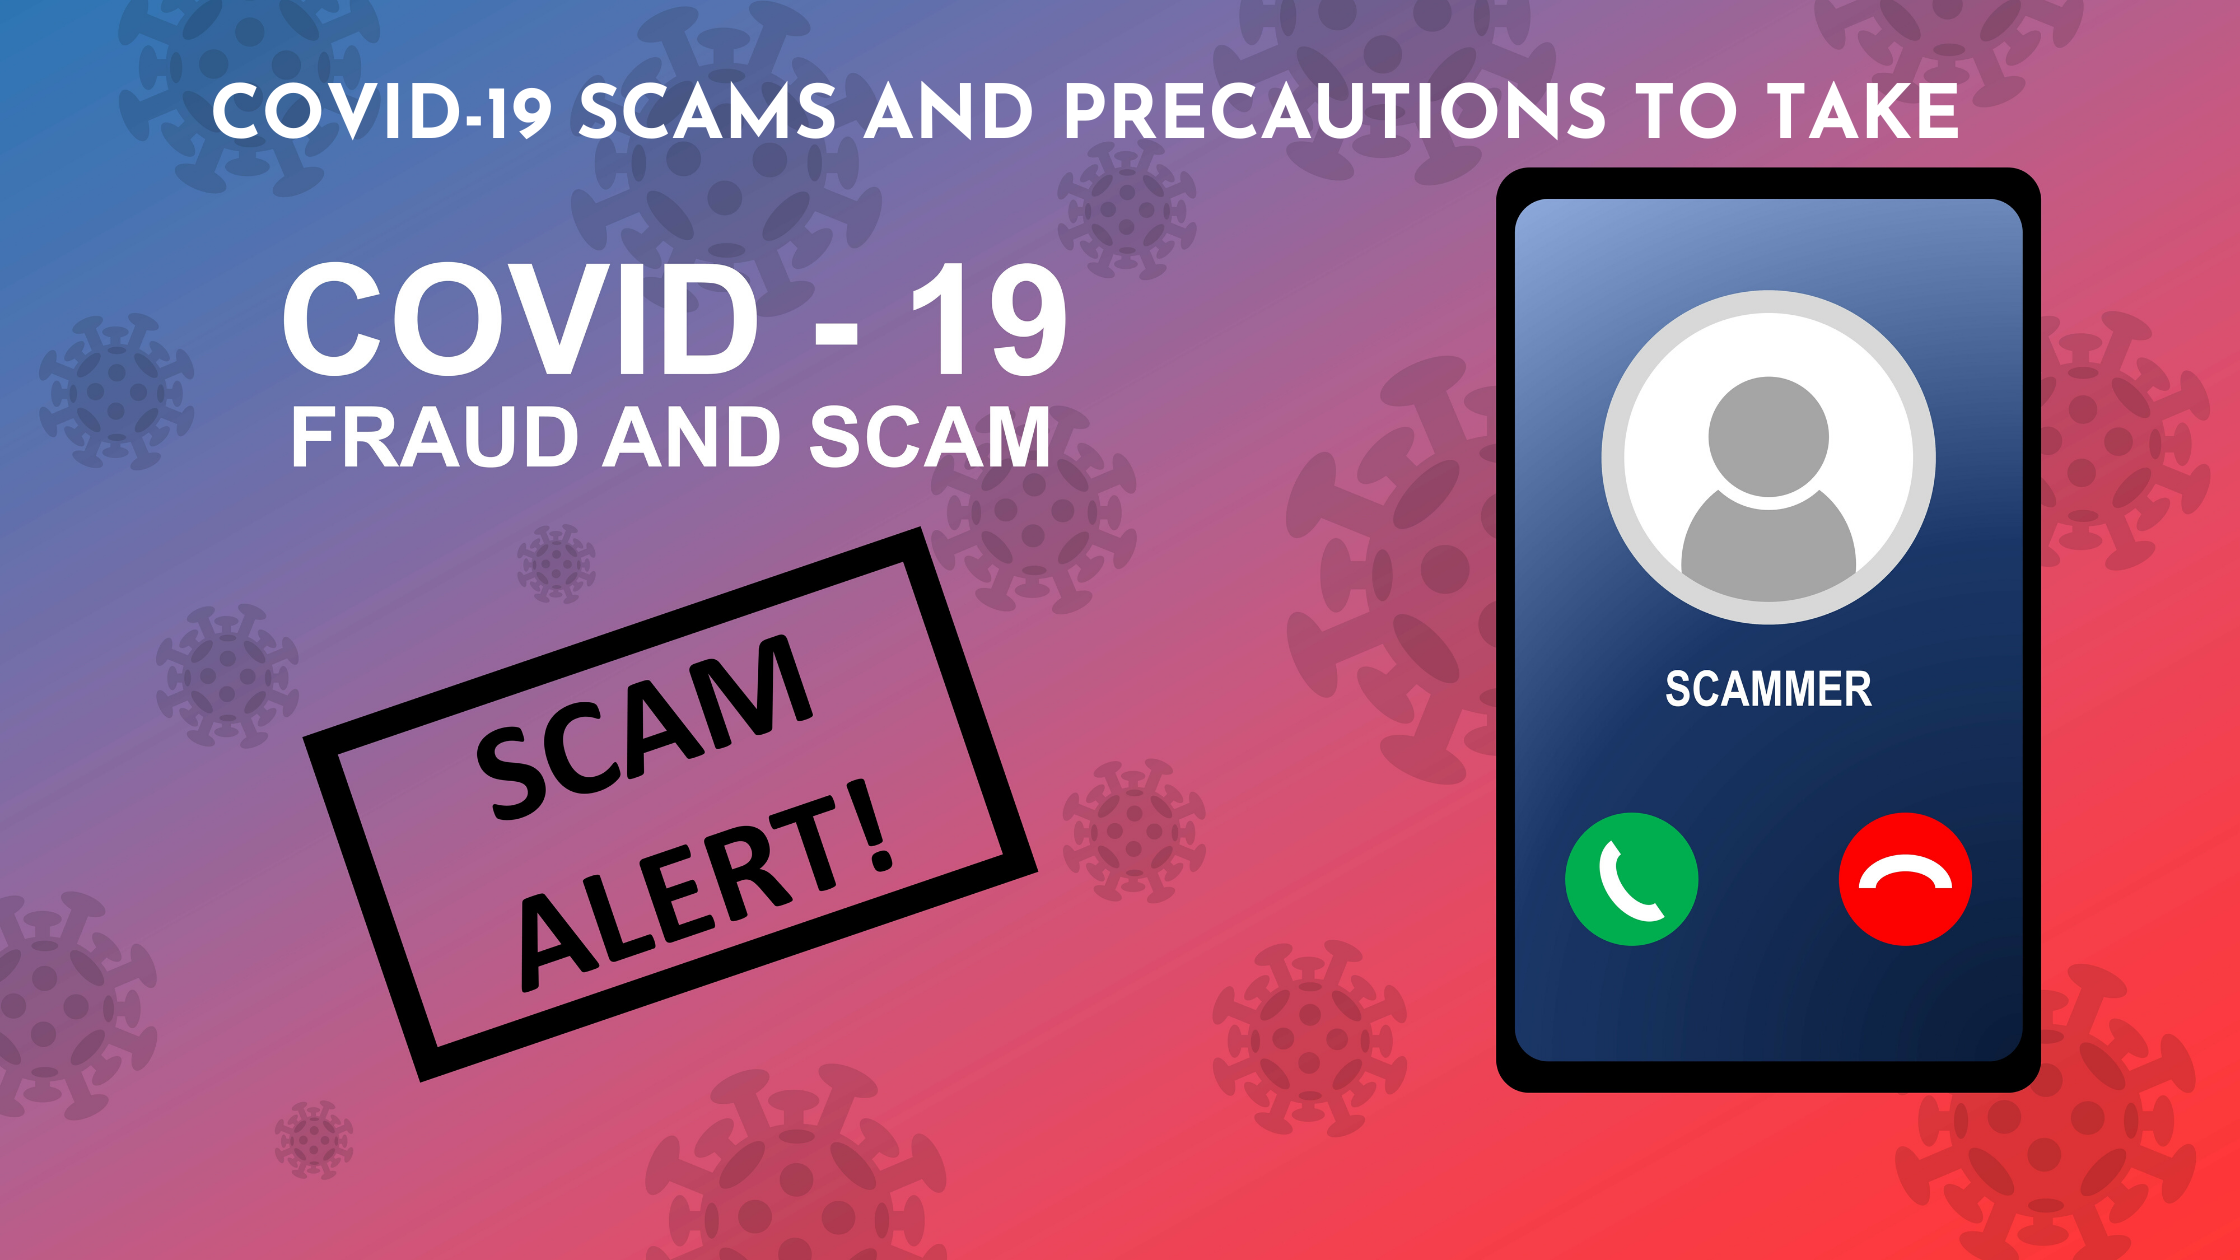 COVID-19 SCAMS AND PRECAUTIONS TO TAKE Thumbnail